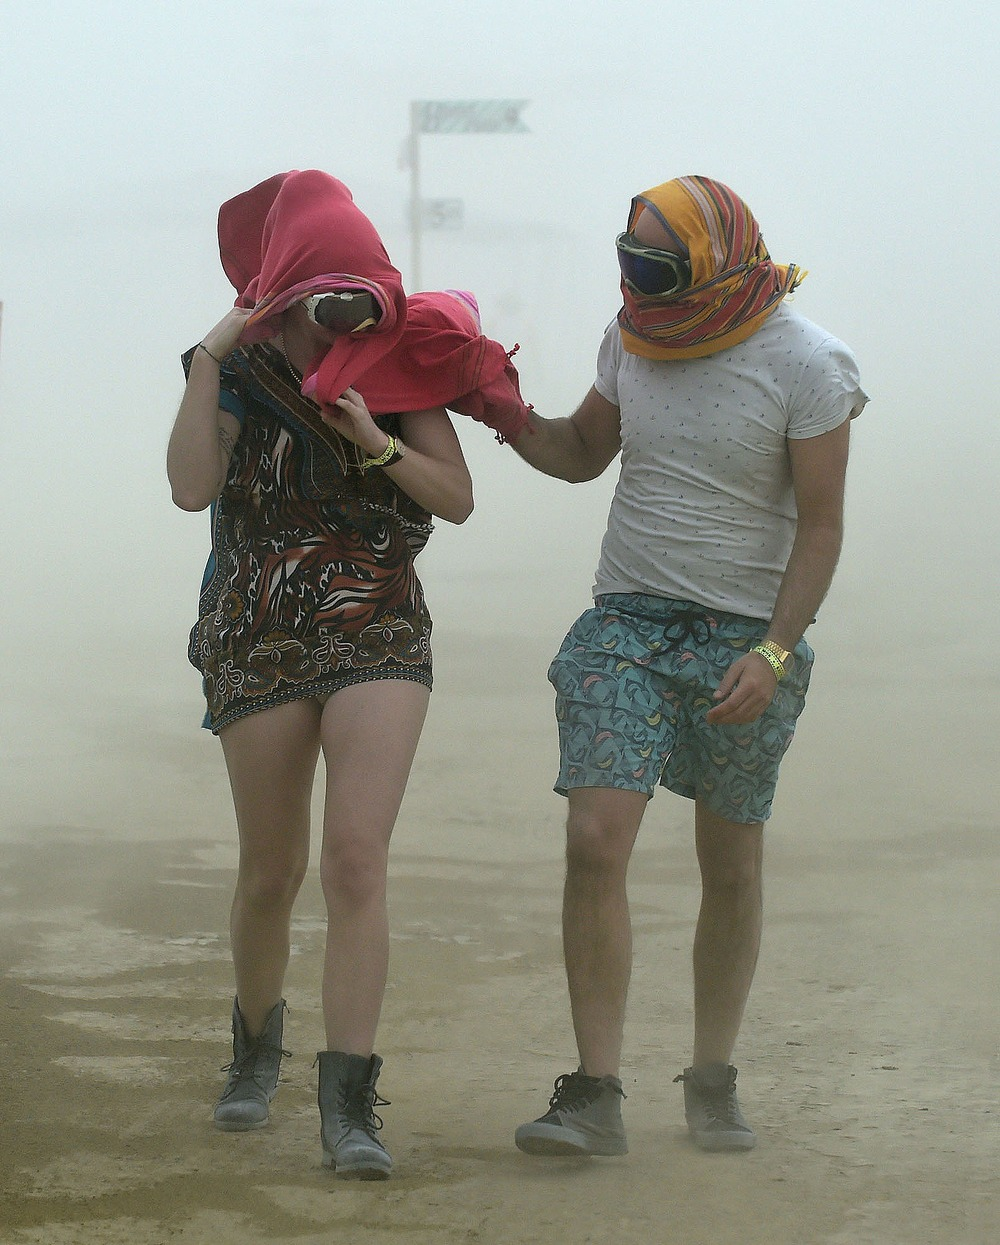 Burning Man dust storm